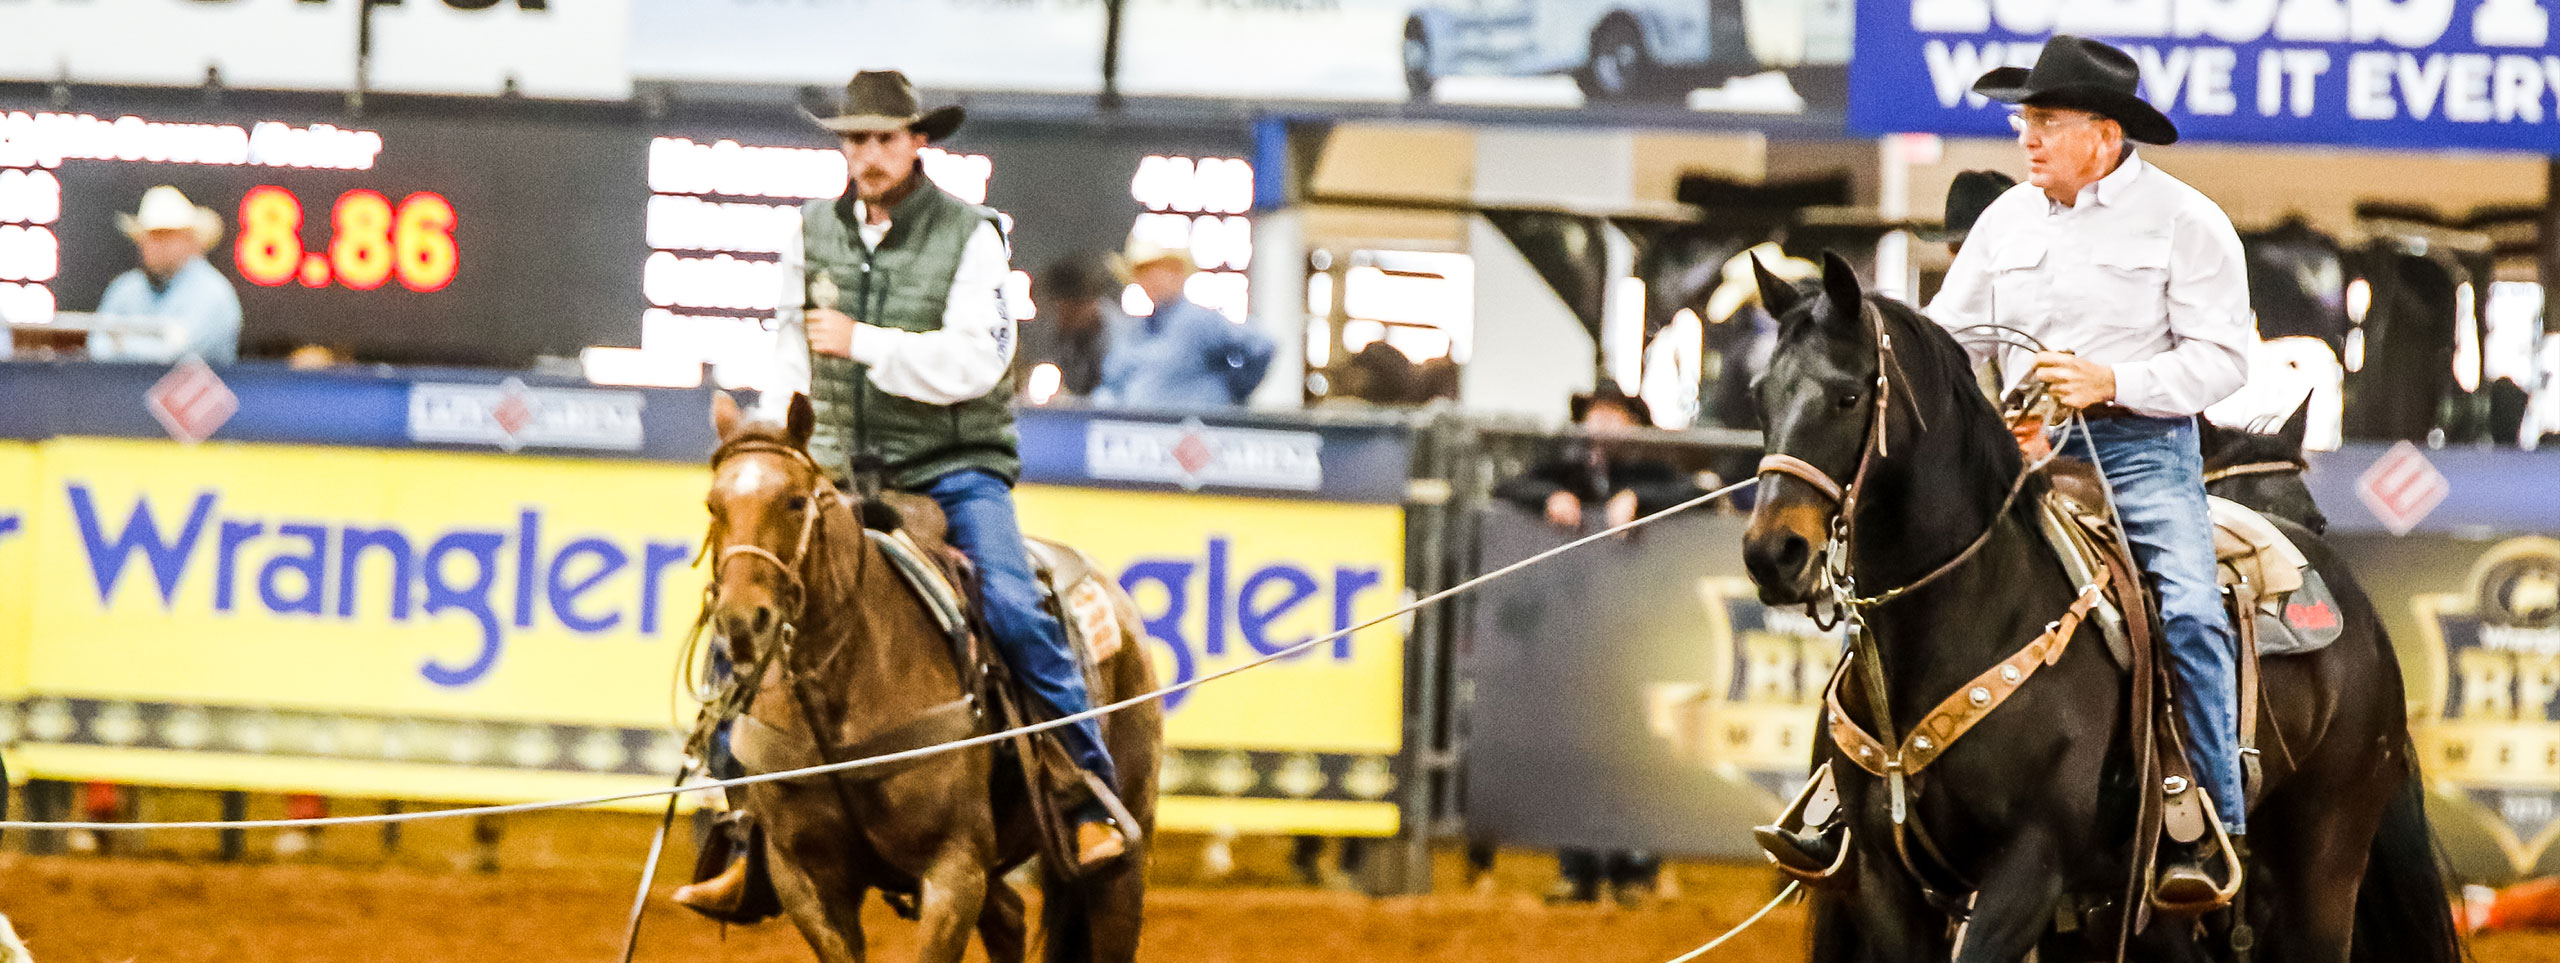 Complete Results From The 2021 BFI Week 10.5 Over 40 Roping